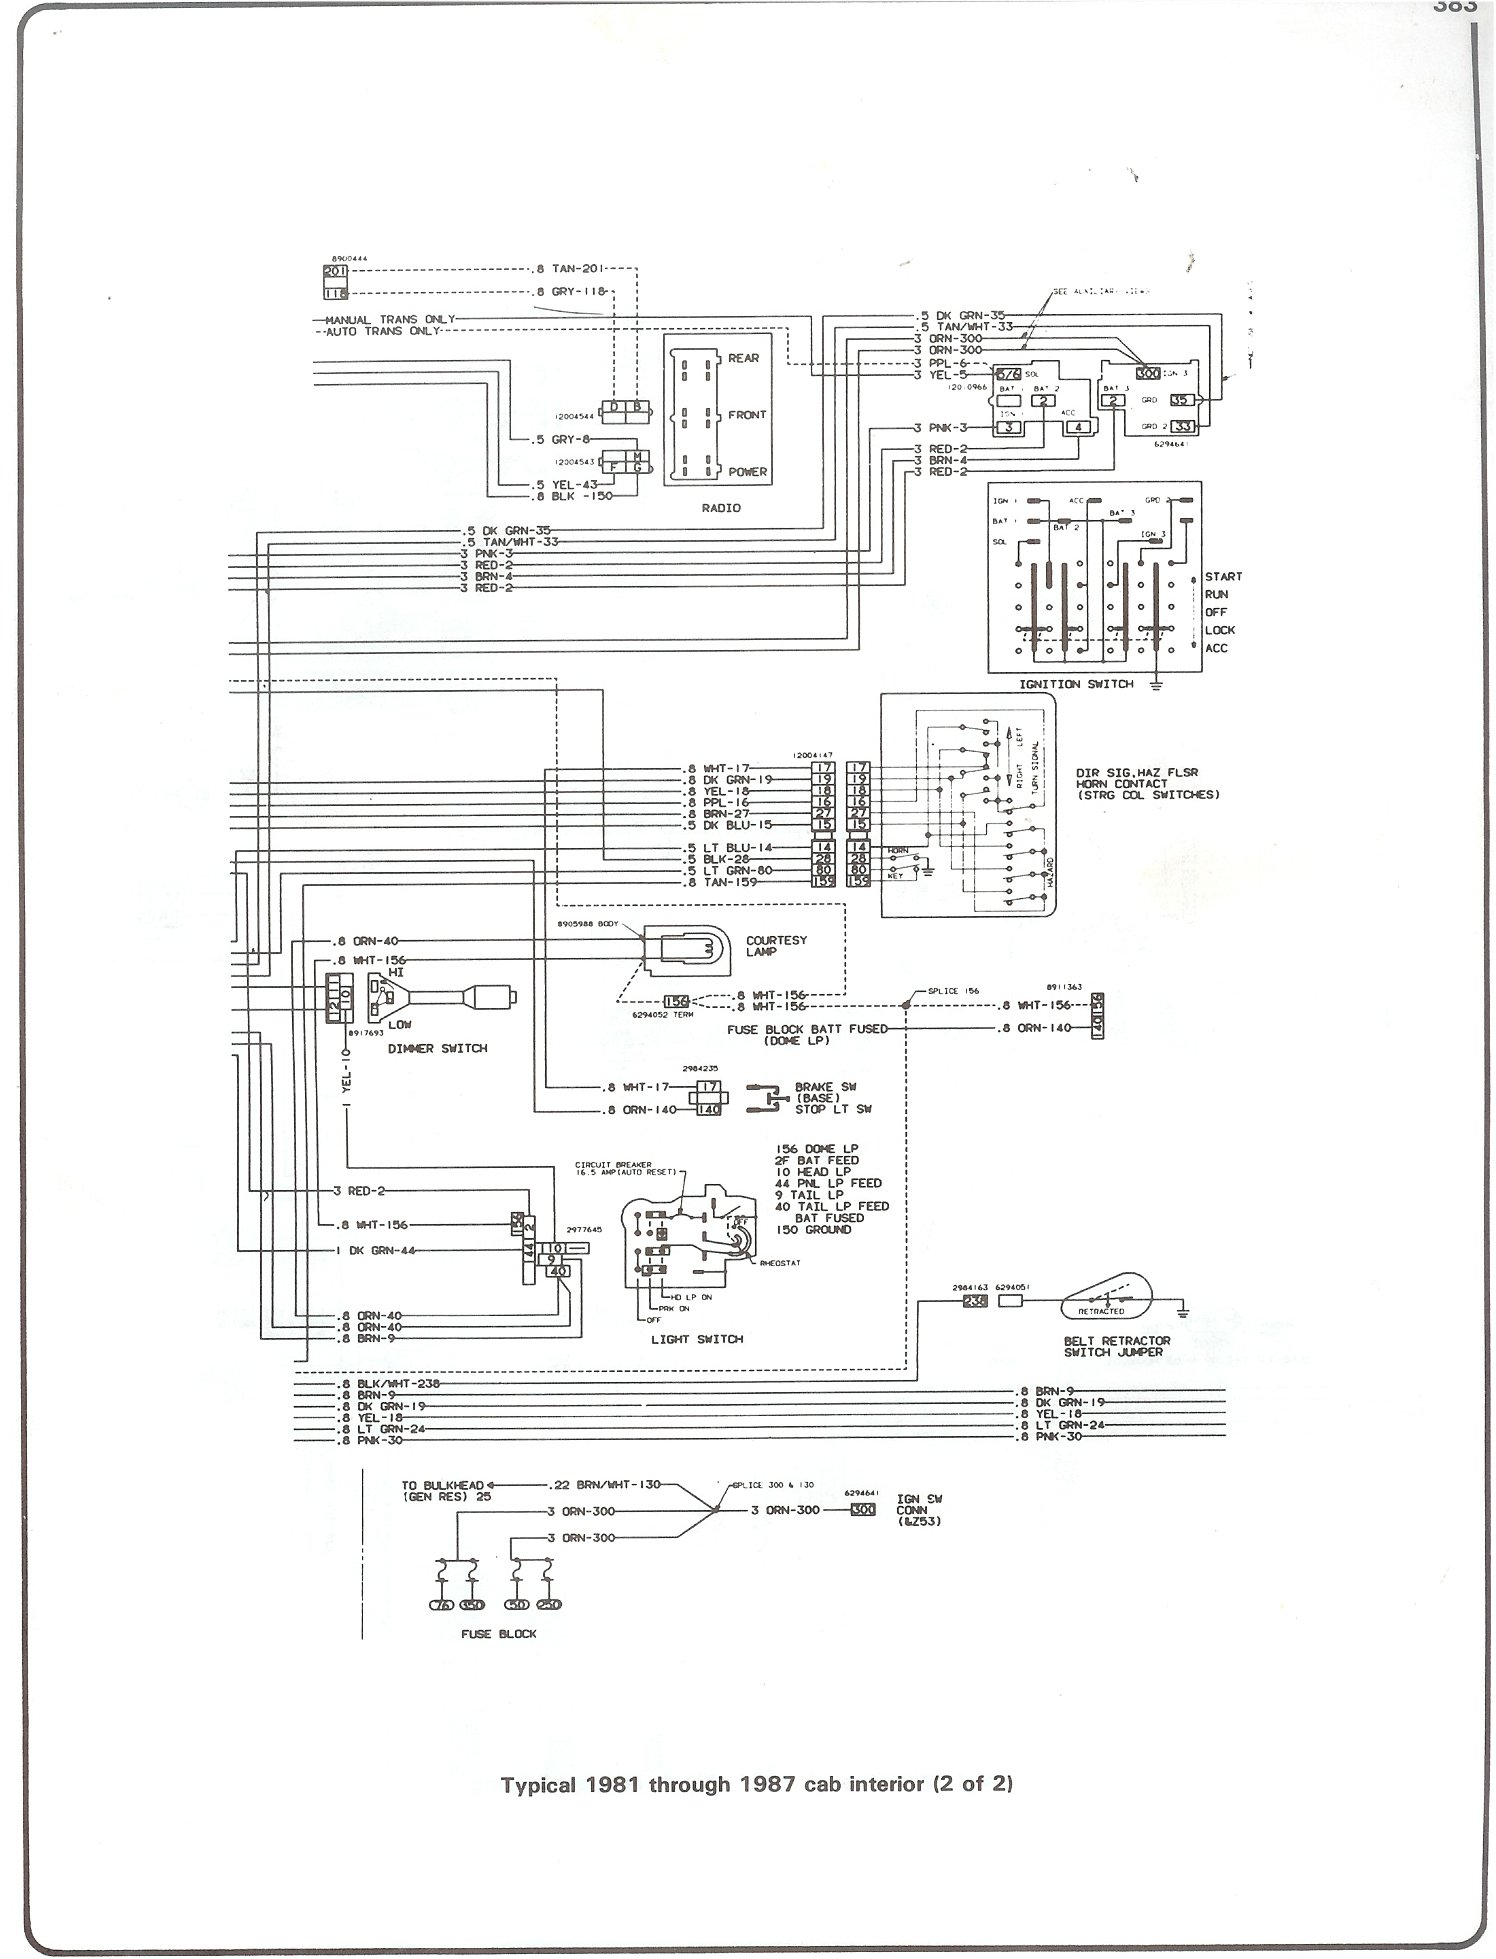 81 87_cab_inter_pg2 complete 73 87 wiring diagrams 1984 chevy c10 wiring diagram at soozxer.org